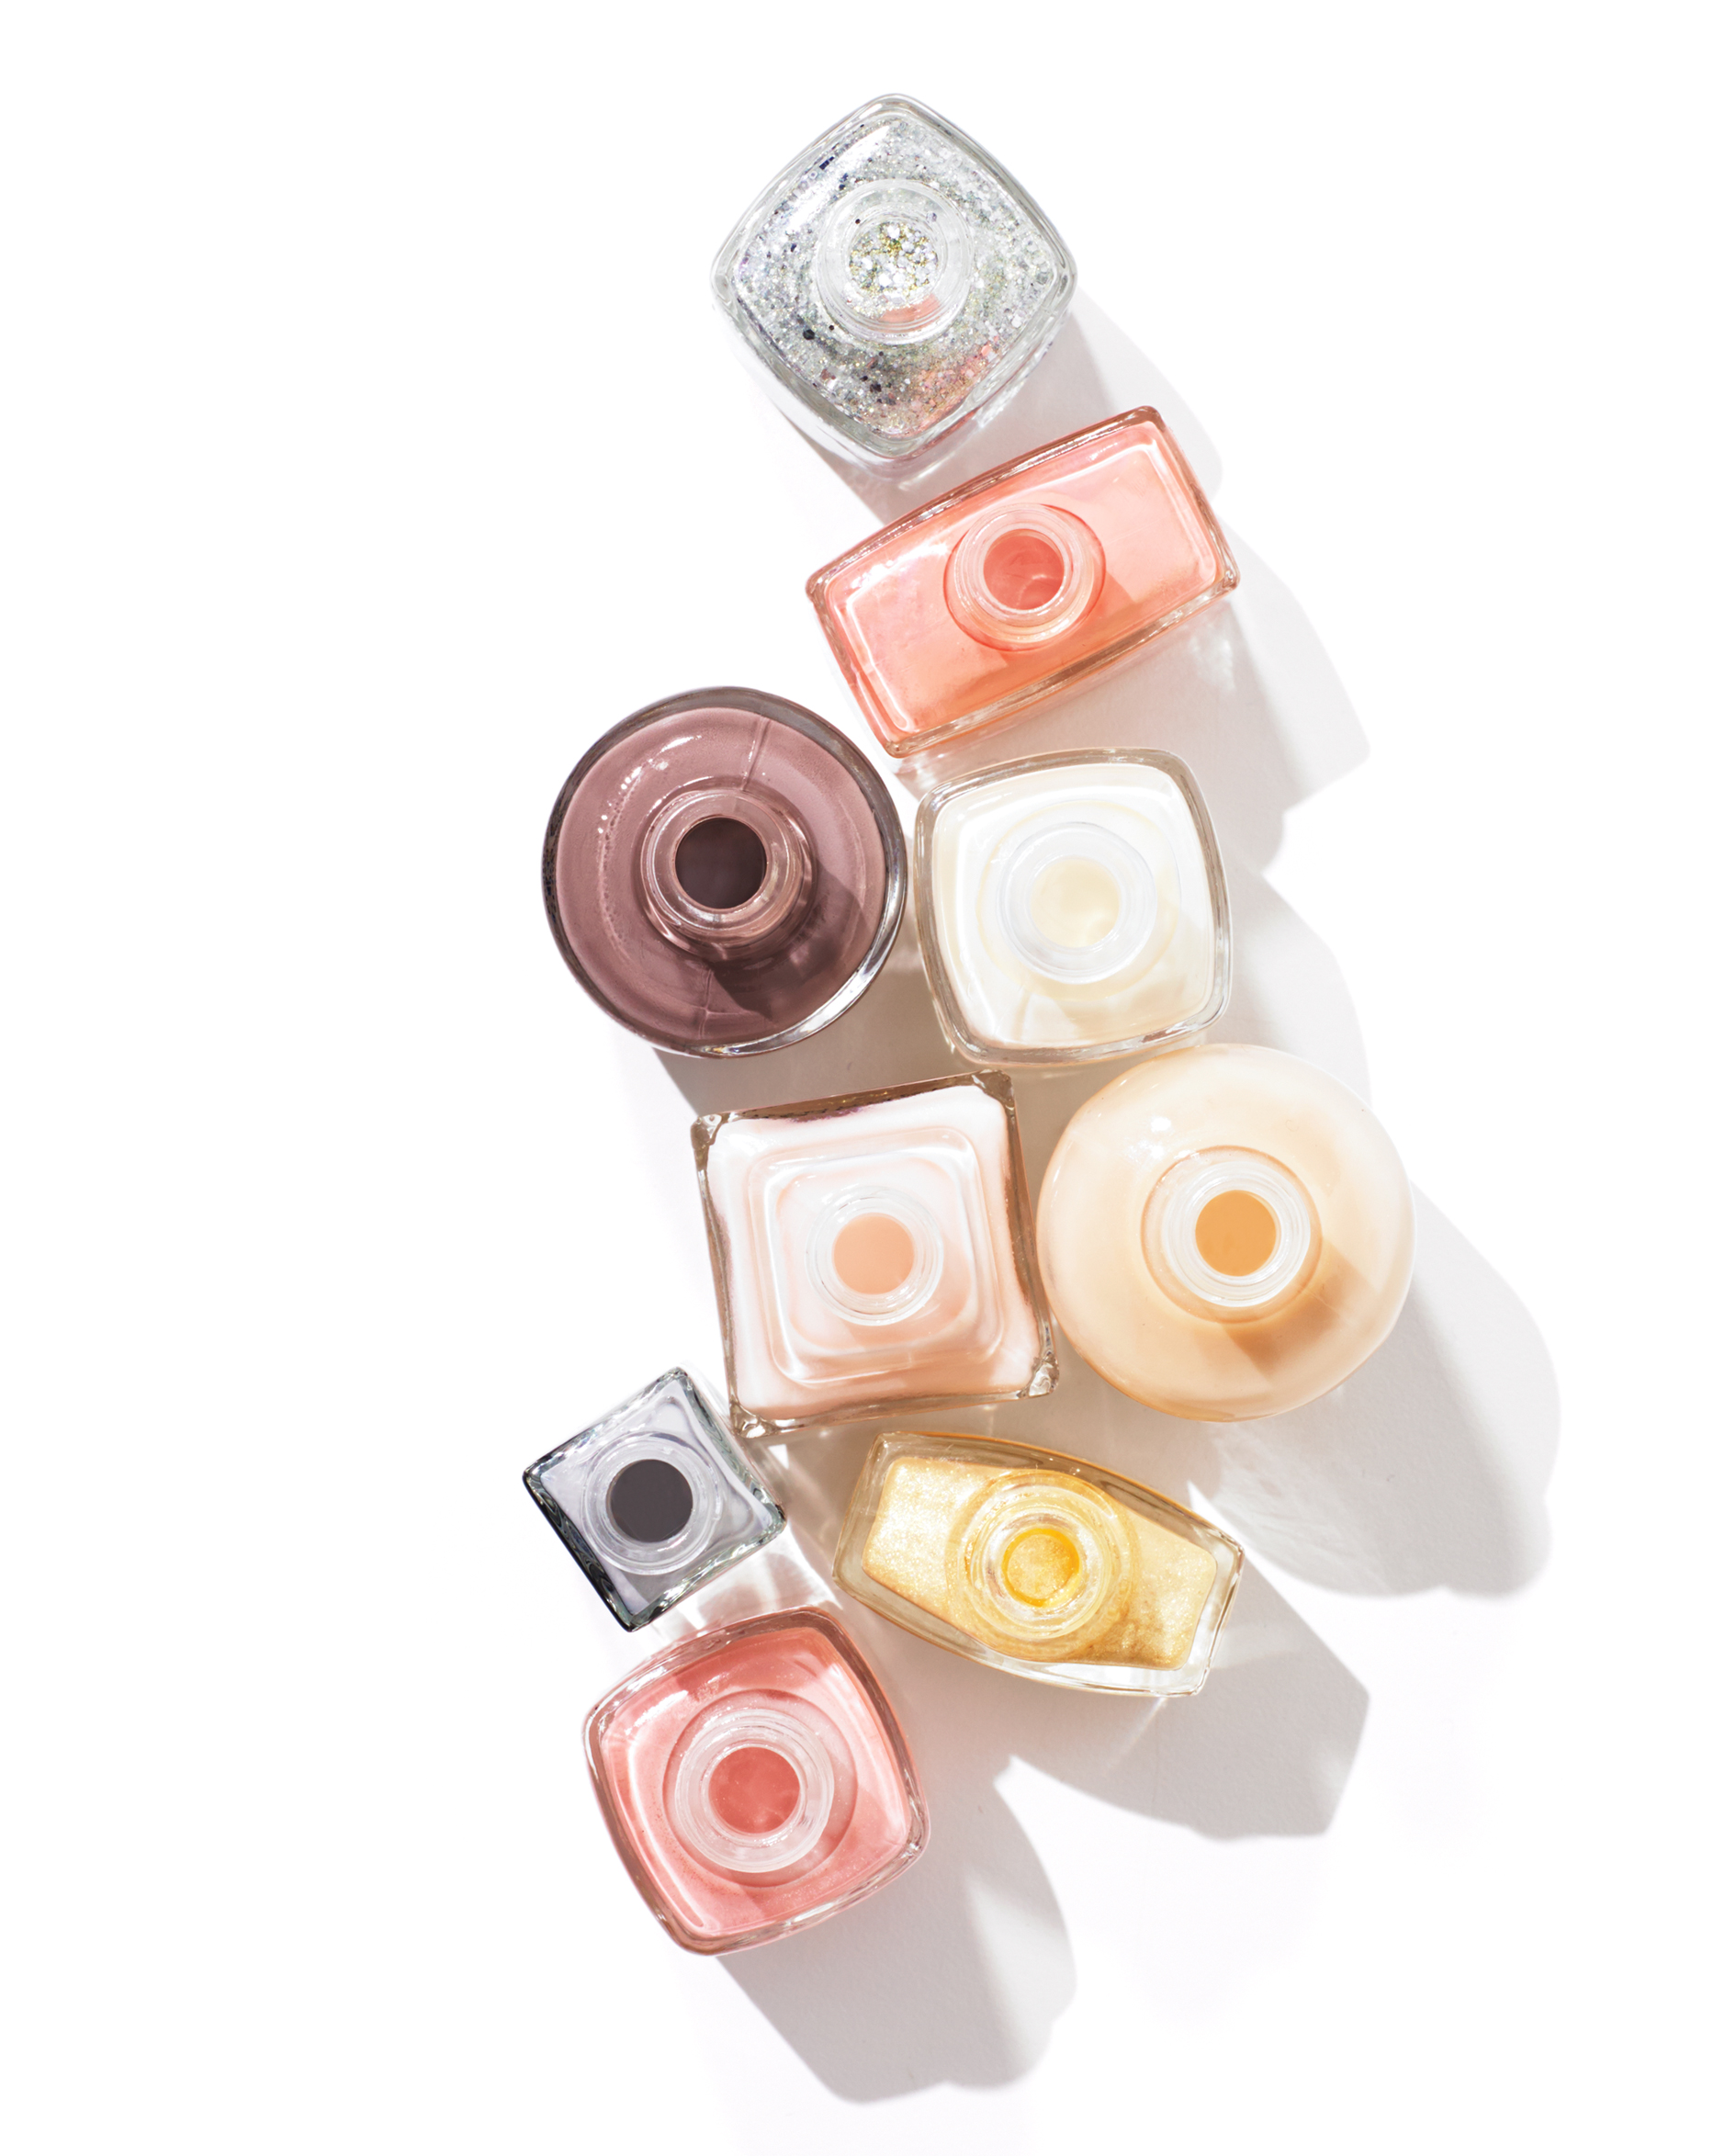 How To Dispose Of Nail Polish Remover : dispose, polish, remover, Should, Still, Polish, That's, Separated?, Martha, Stewart